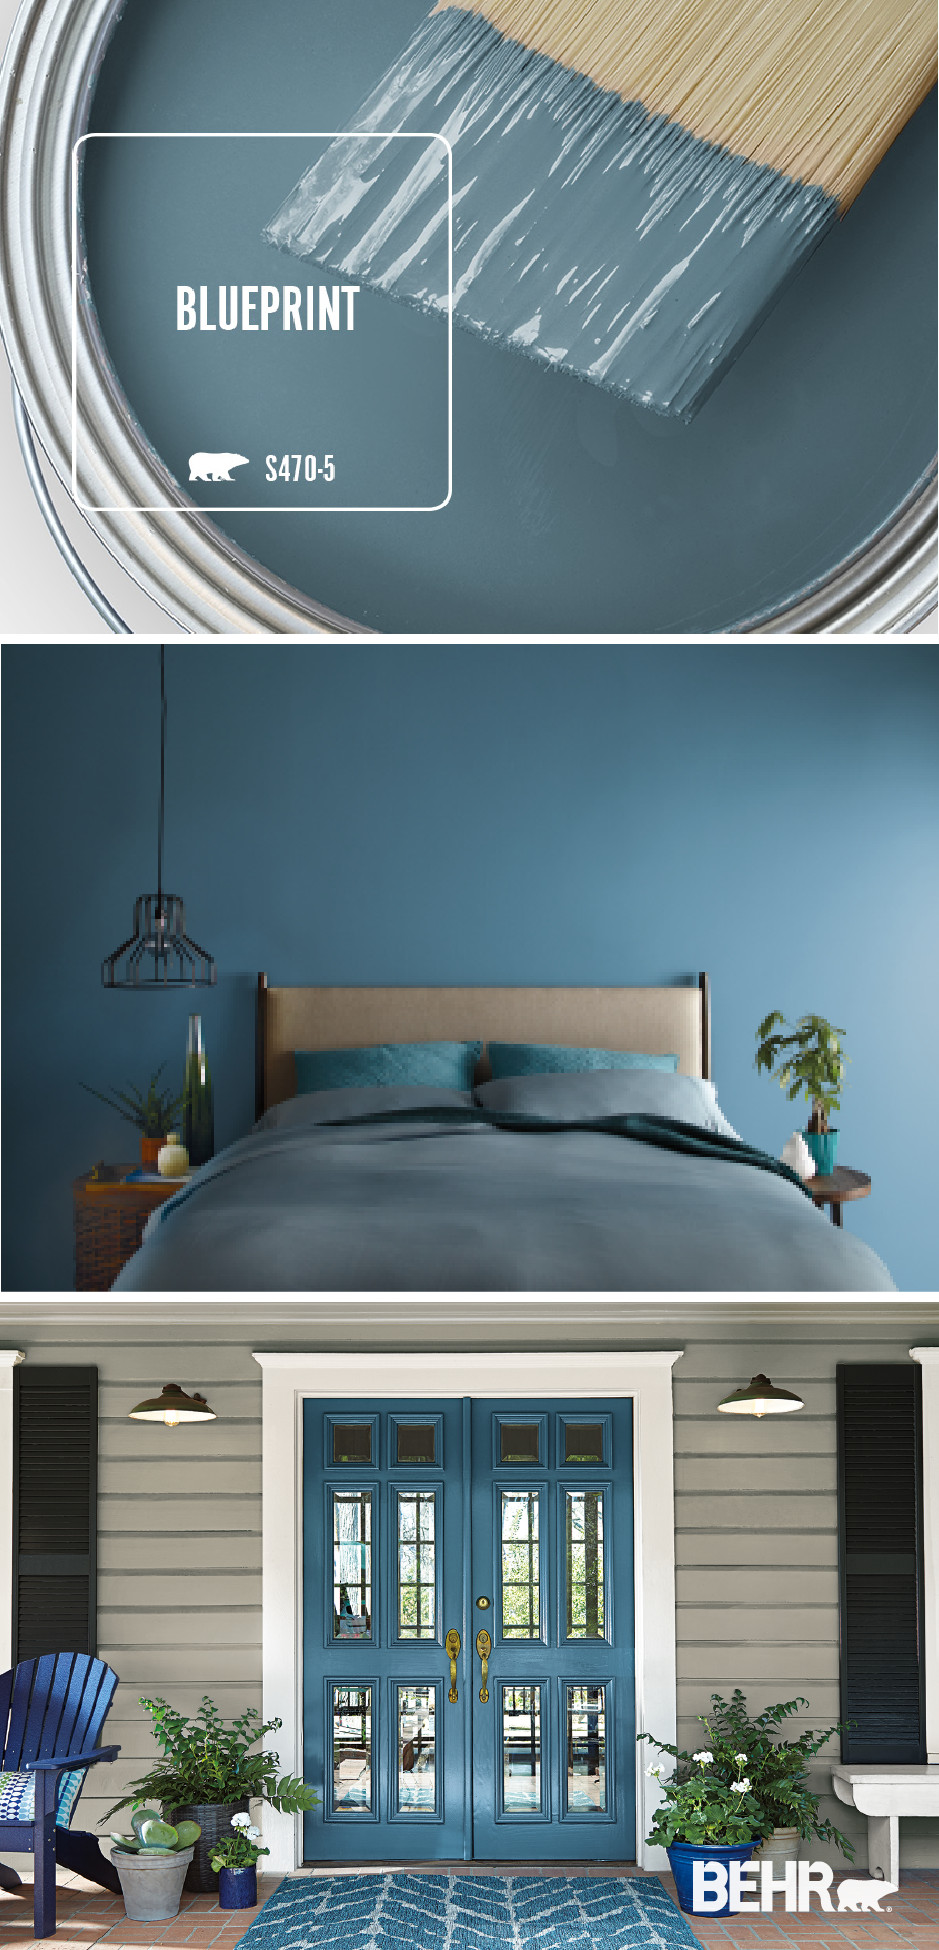 Shades Of Blue for Bedroom Luxury See What the Behr 2019 Color Of the Year Blueprint Can Do